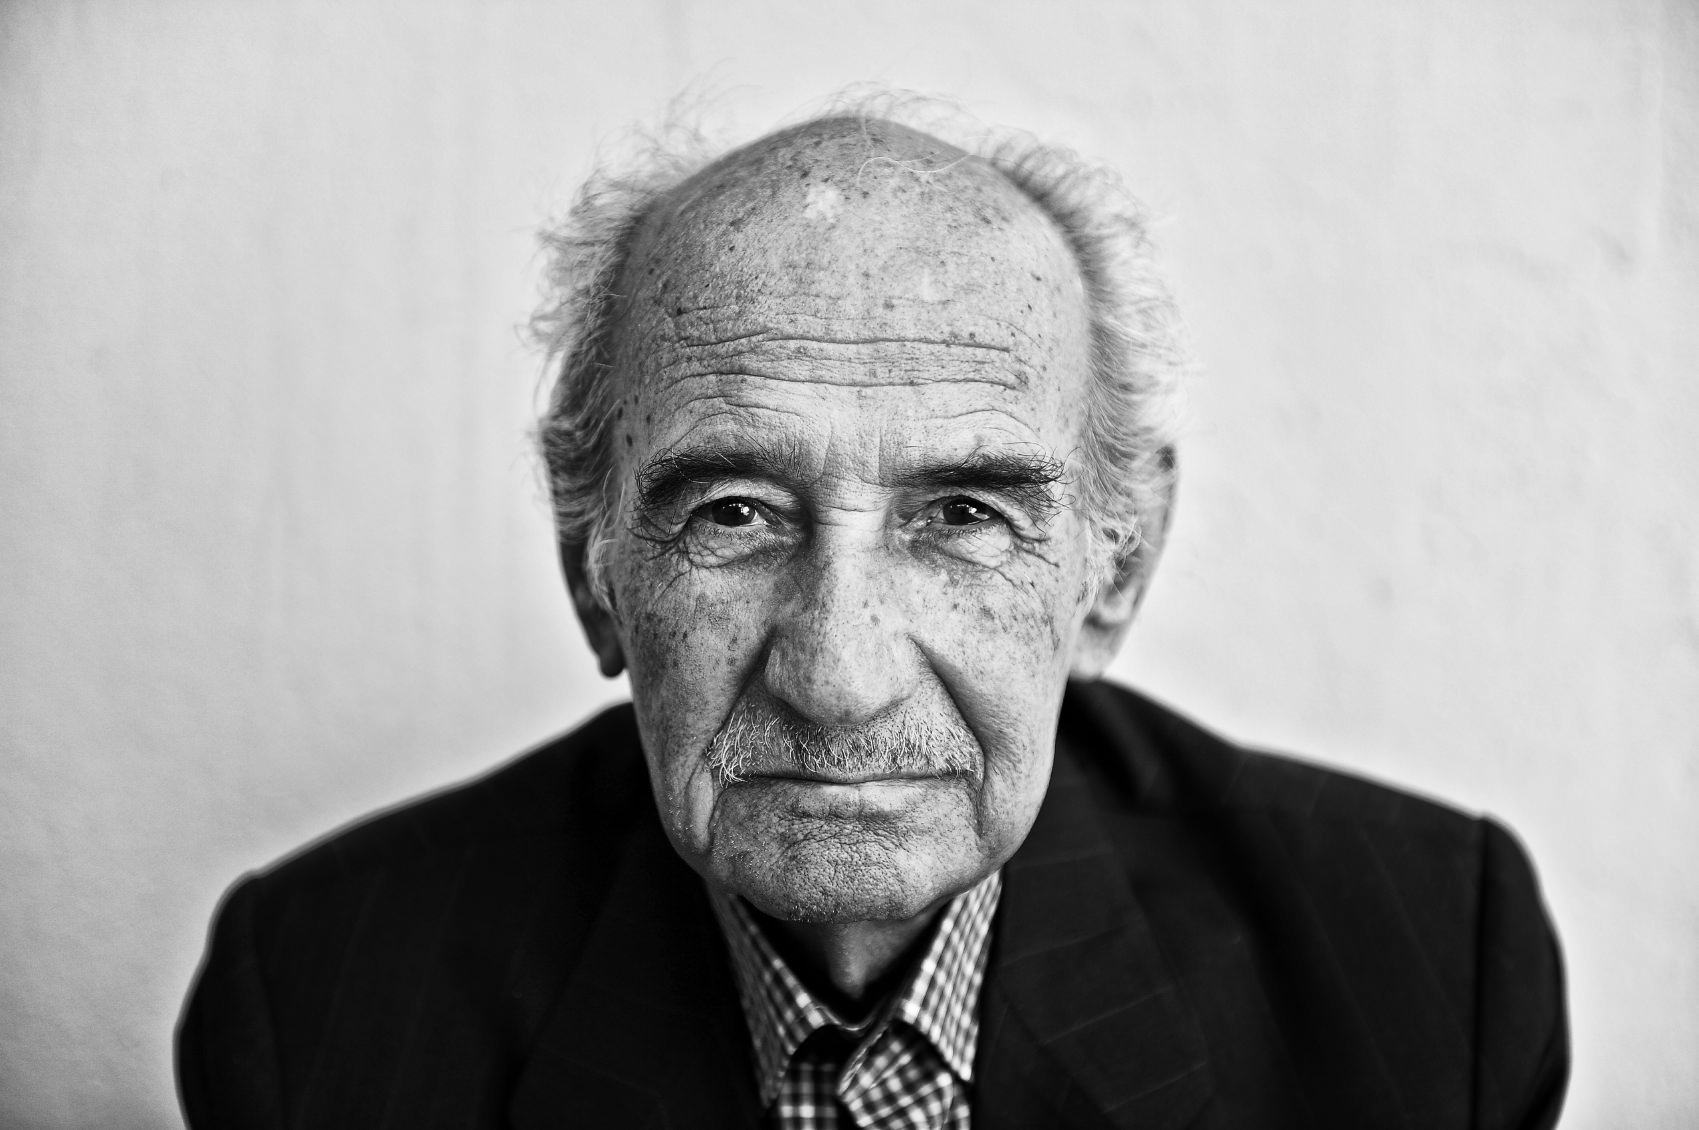 Black white portraits of old men alk3r